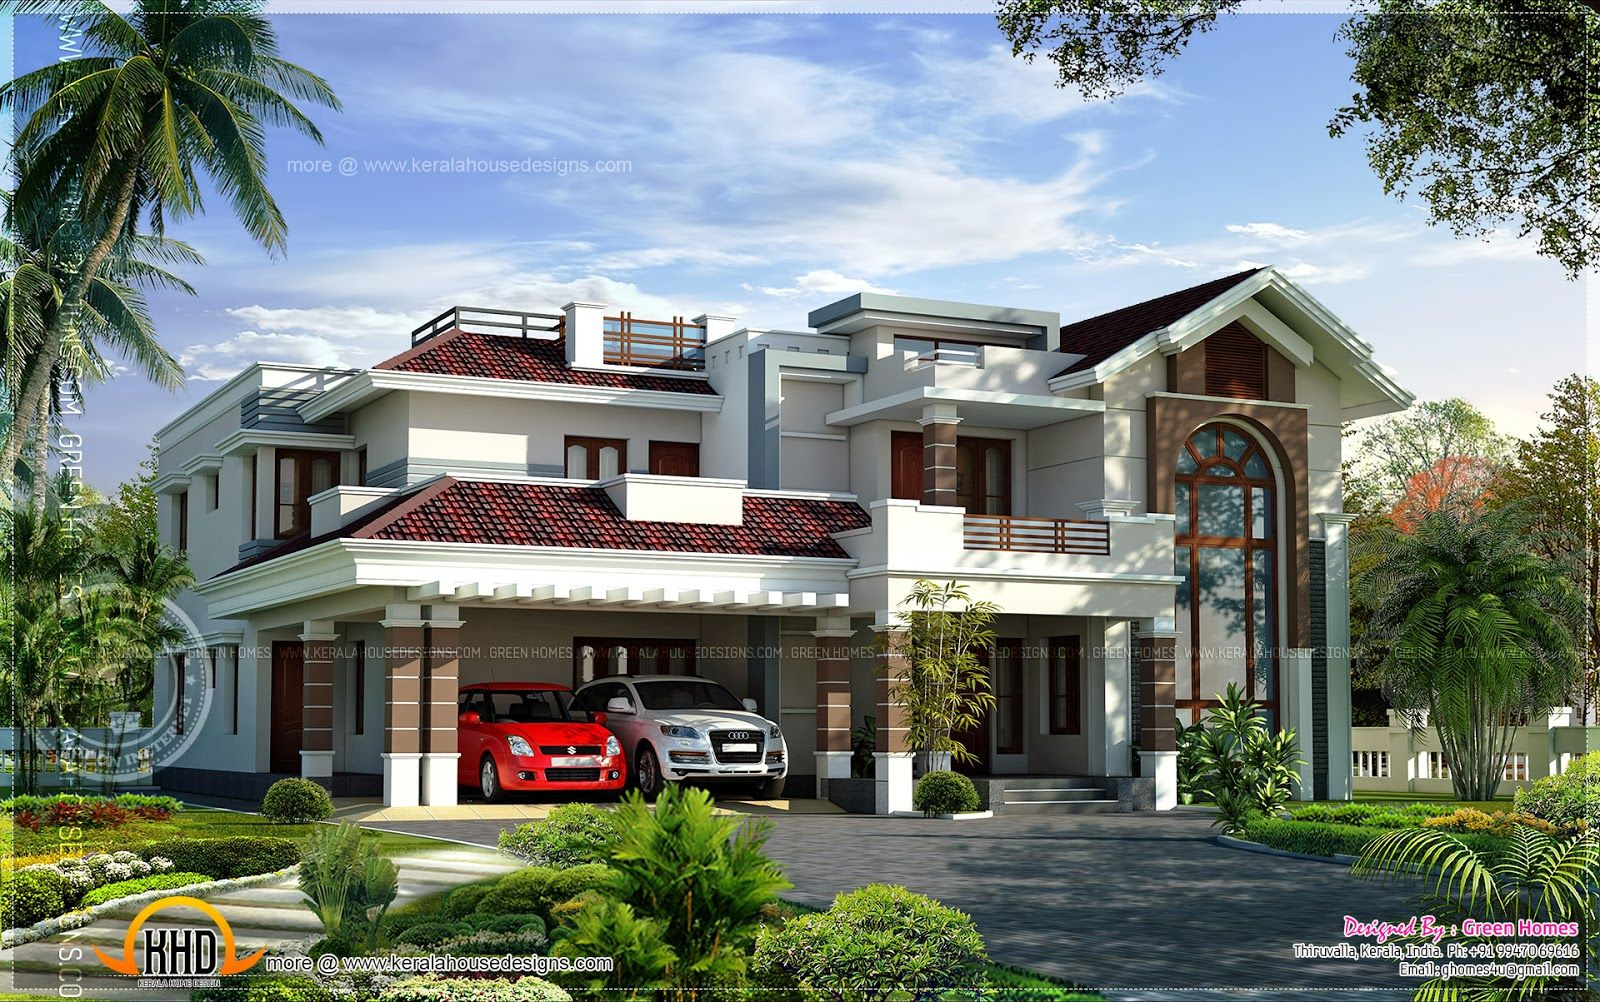 A Selection Of The Most Beautiful Houses Oliveraie Prestige On The French Riviera House Luxury Luxury Ho Kerala House Design My House Plans Modern Mansion